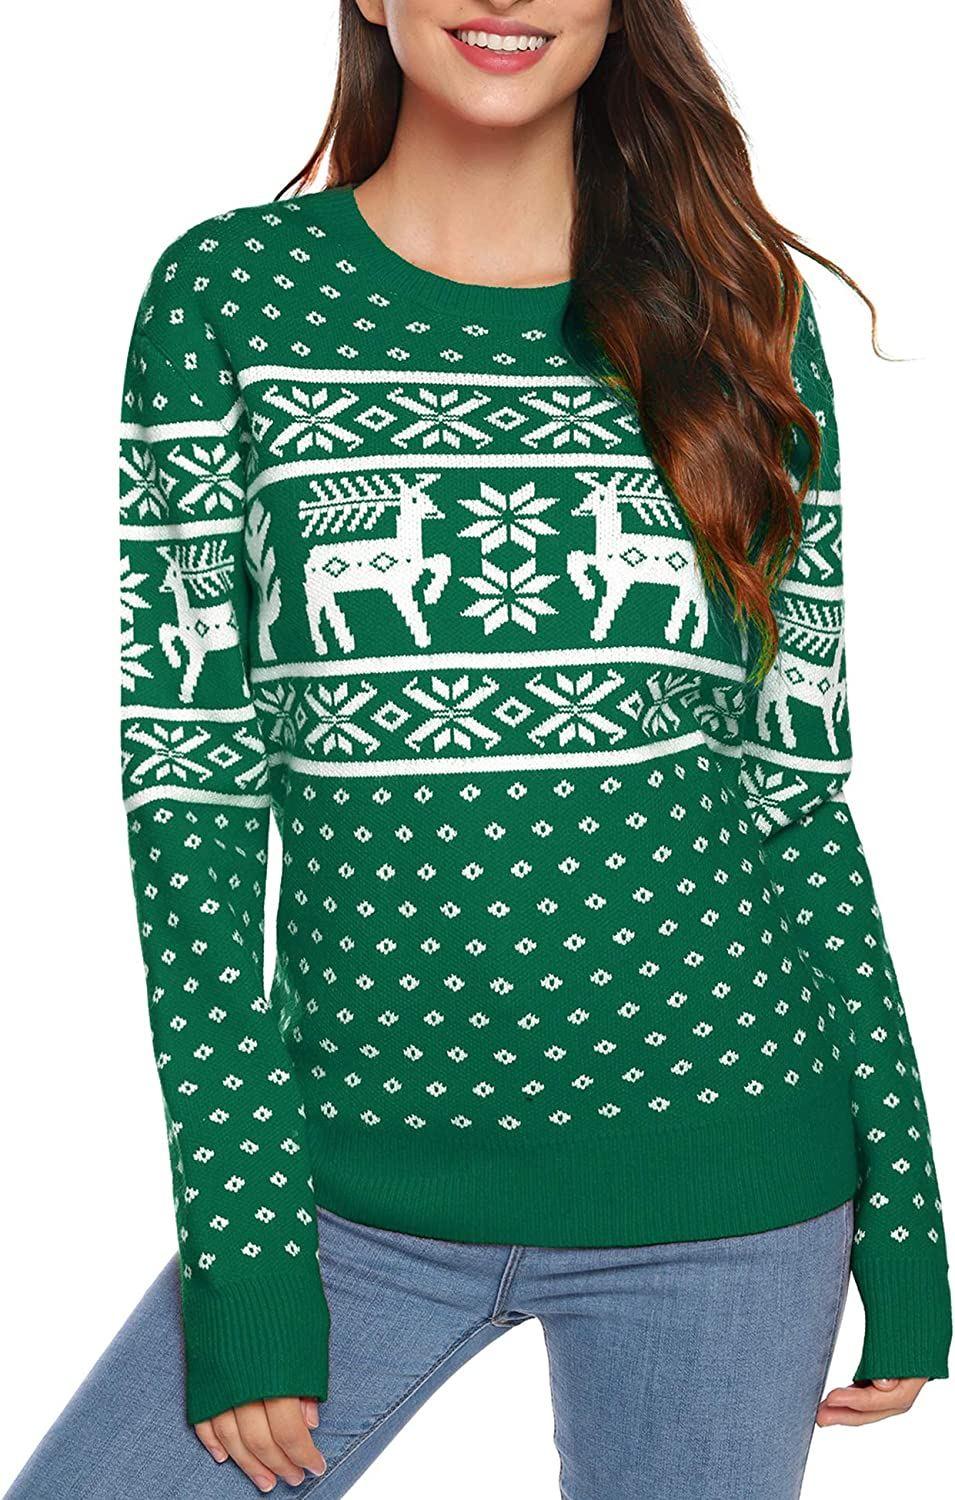 Aibrou Christmas Family Jumpers Xmas Matching Pullover Sweater Long Sleeve Reindeer Snowflake Knitted Top for Men Women Kids